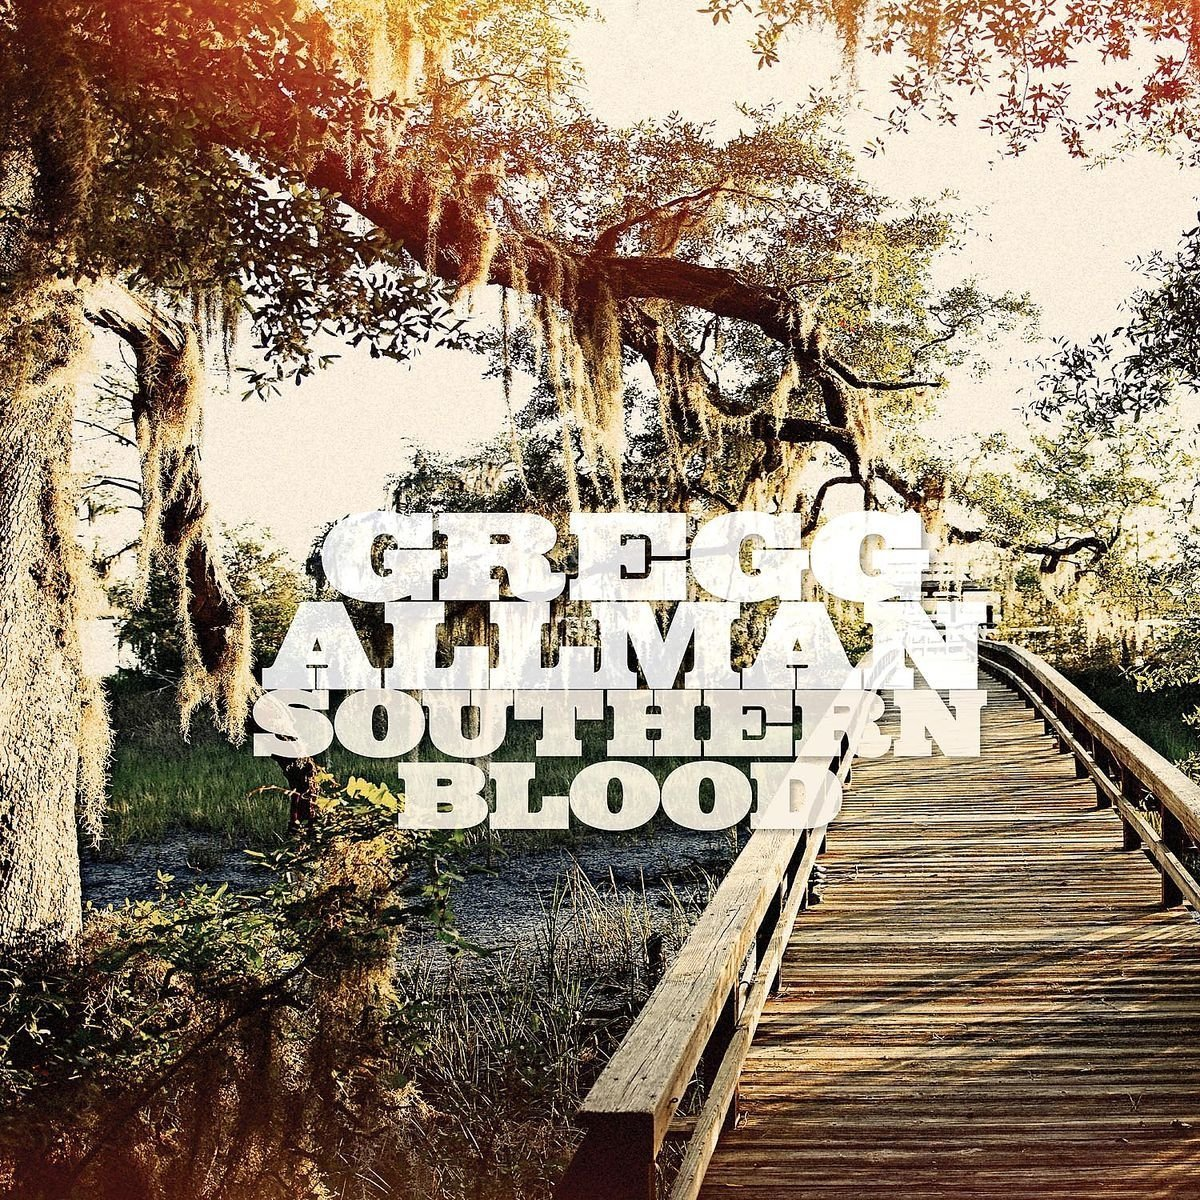 Gregg Allman - Southern Blood (Digipack Packaging)